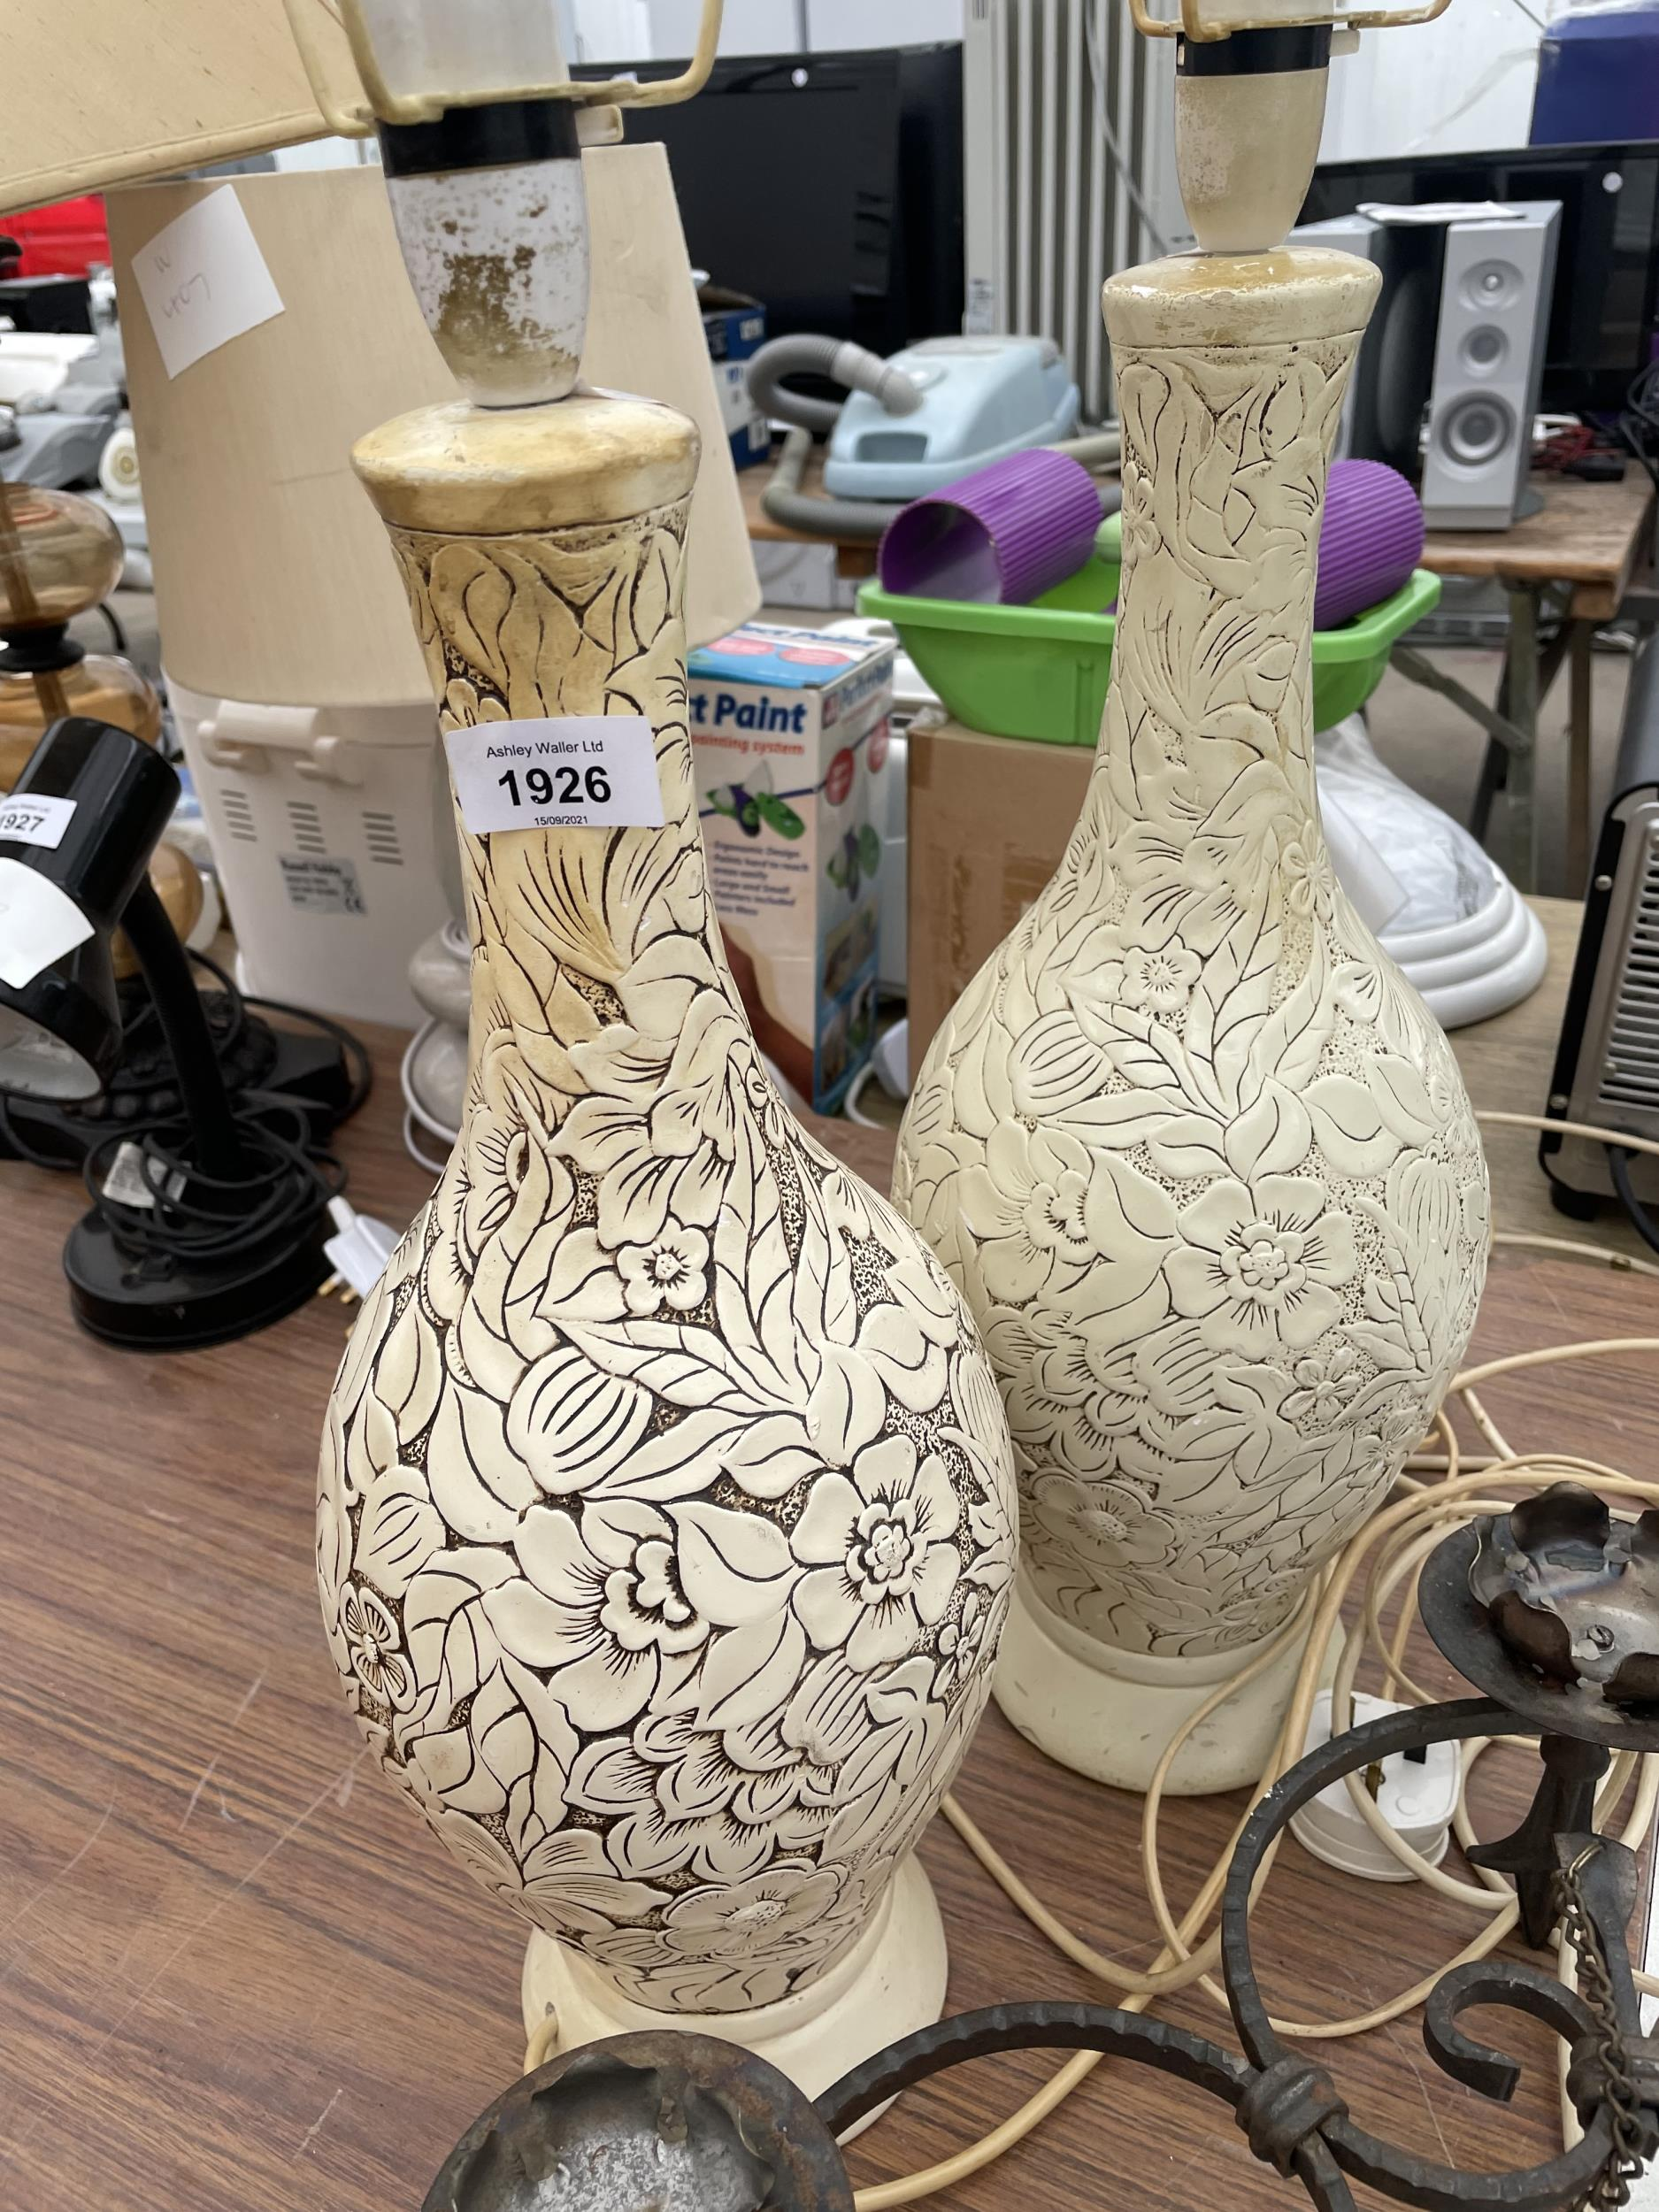 TWO DECORATIVE TABLE LAMPS AND A HANGING CANDLE HOLDER - Image 2 of 3